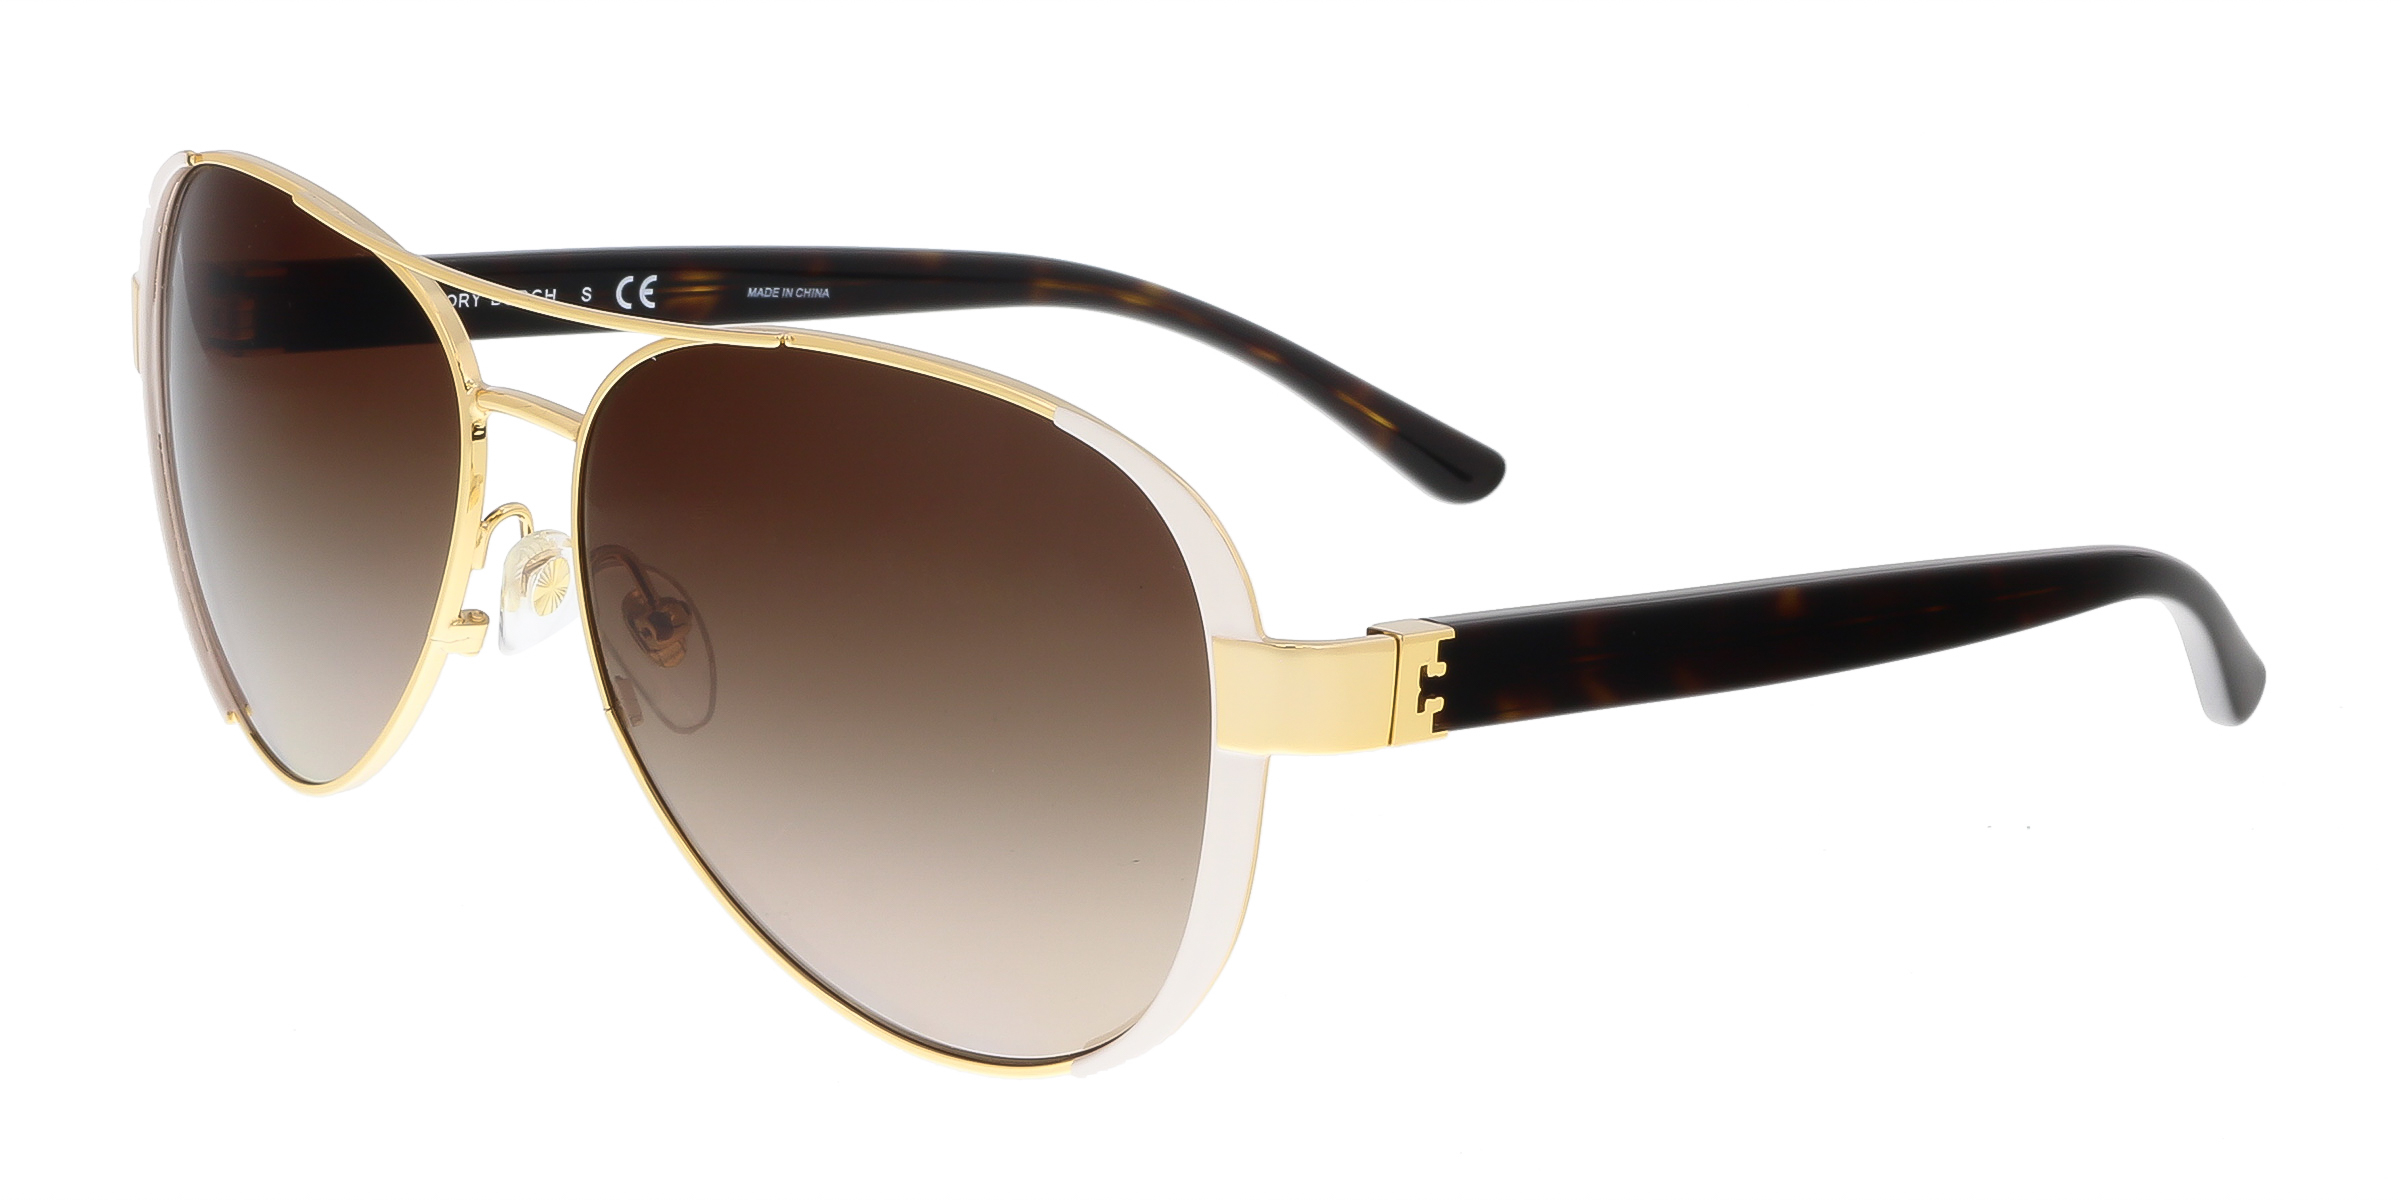 Tory Burch TY6052 320113 Gold/White Aviator Sunglasses